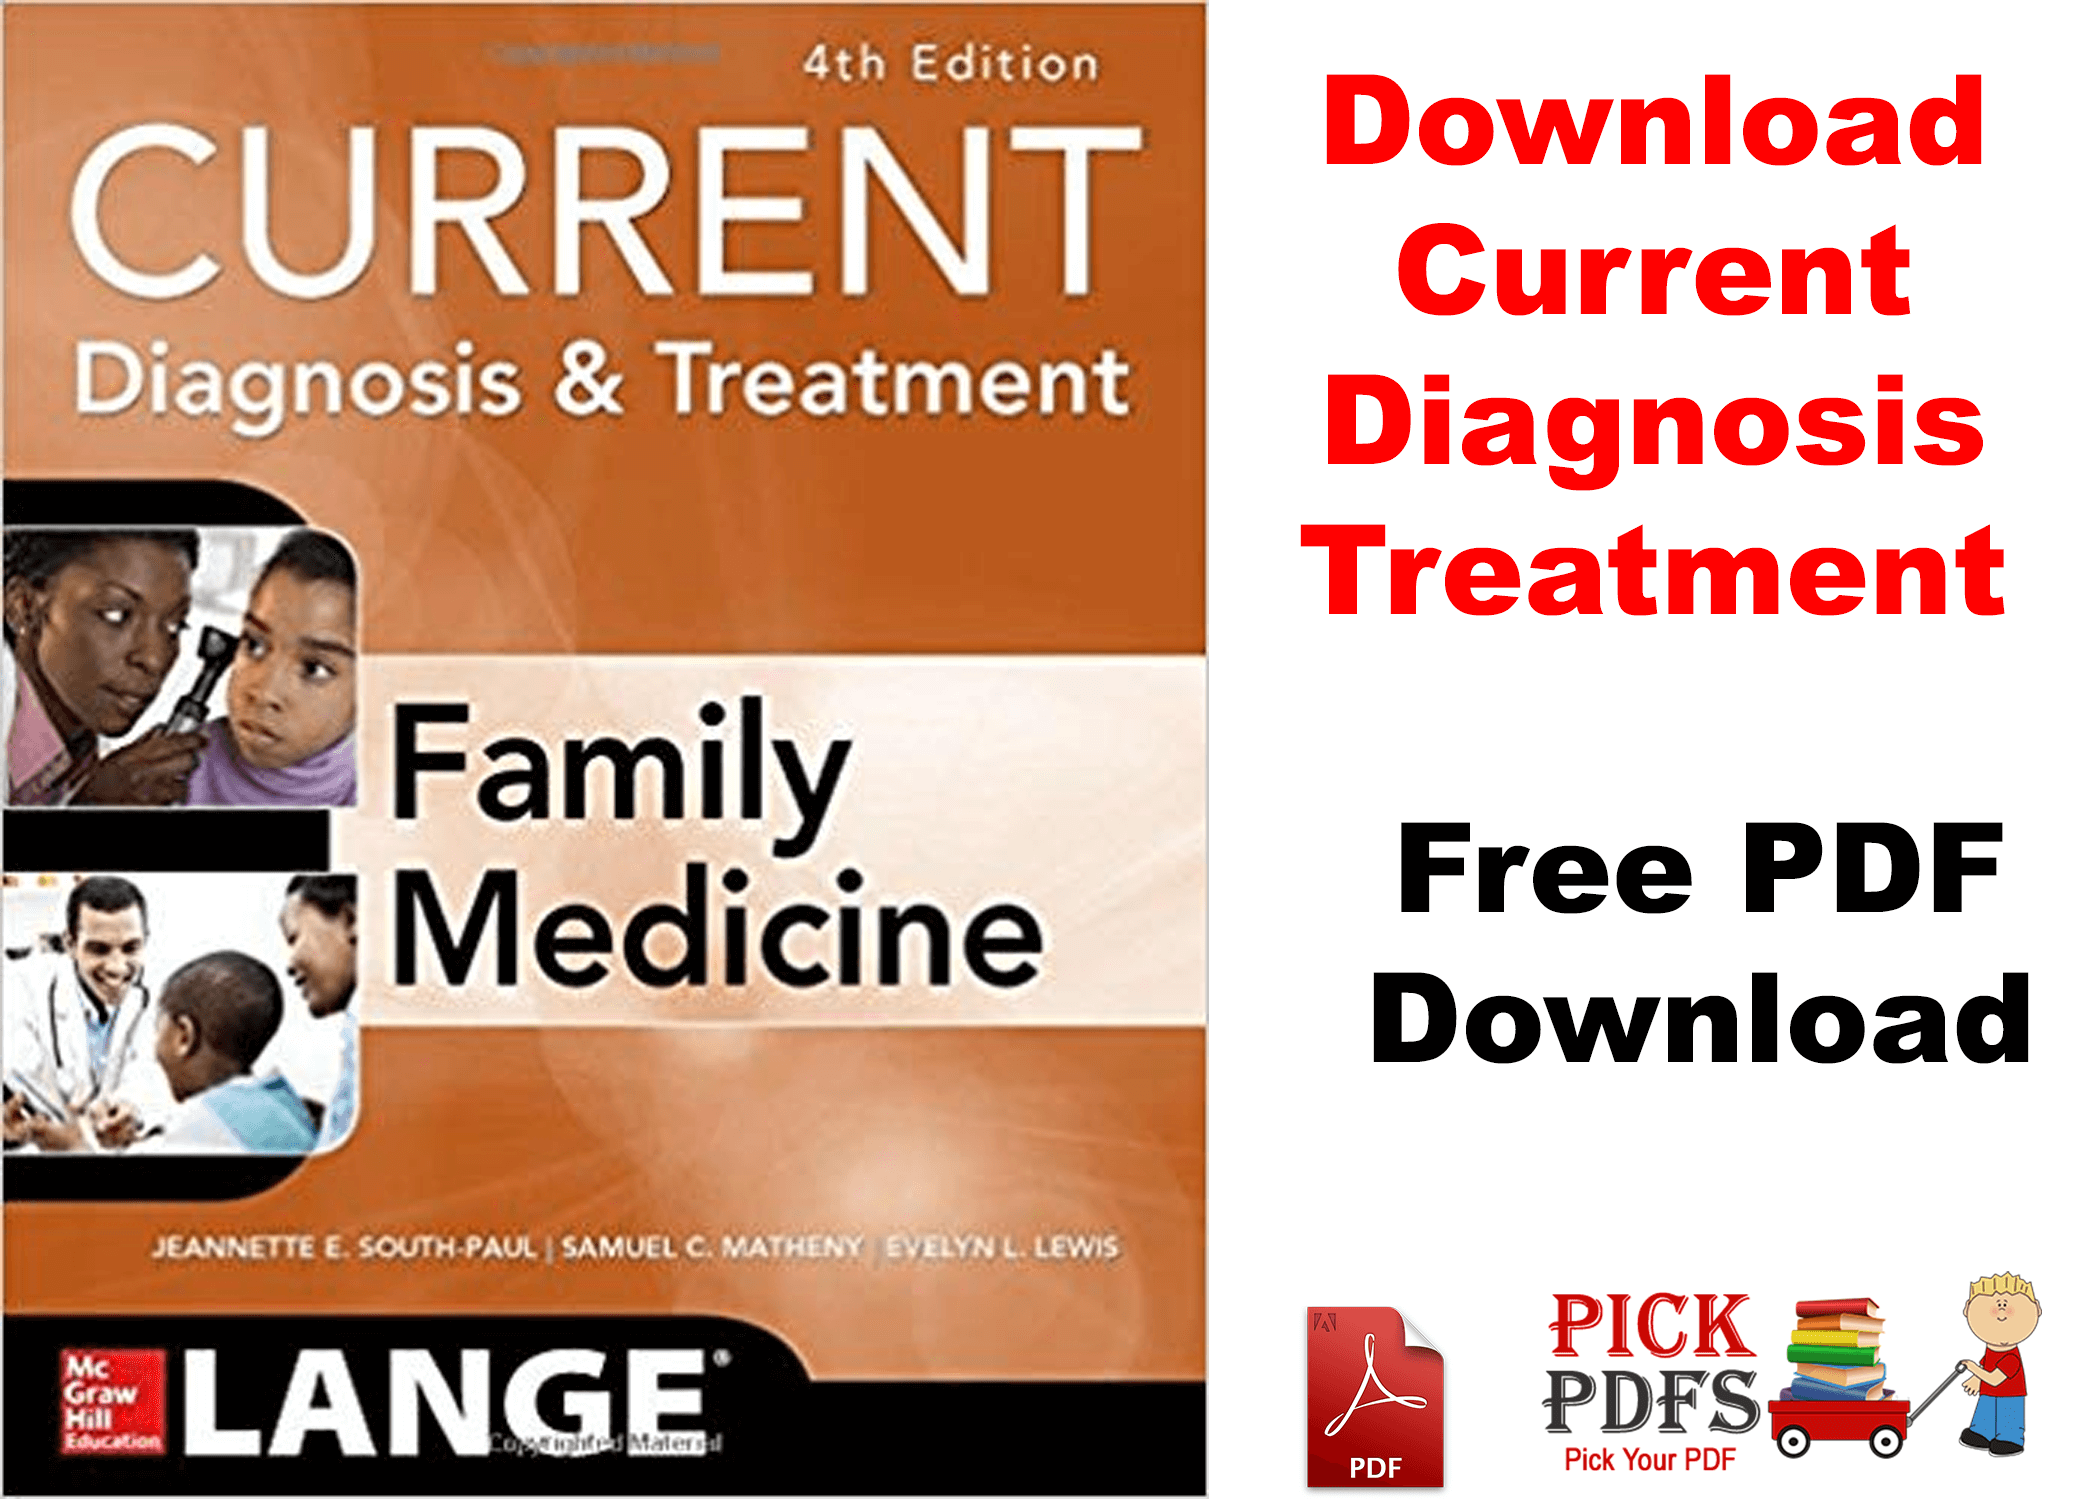 https://pickpdfs.com/current-diagnosis-and-treatment-in-family-medicine-4th-edition-free-pdf-download-direct-link/